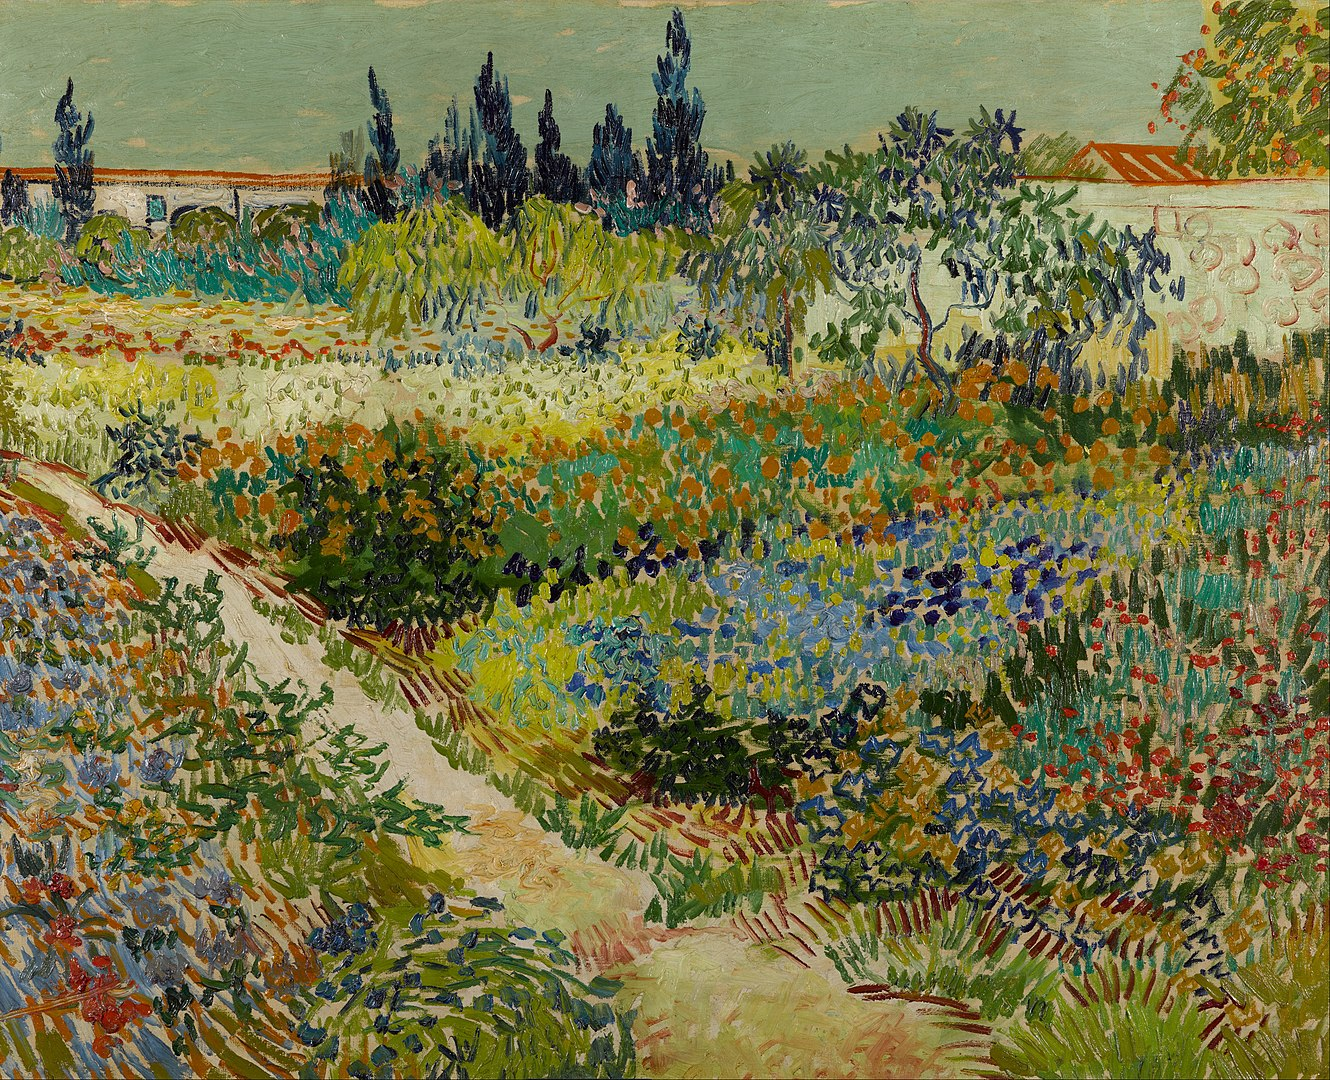 a painting by Vincent van Gogh of a lush garden with a building in the distant background